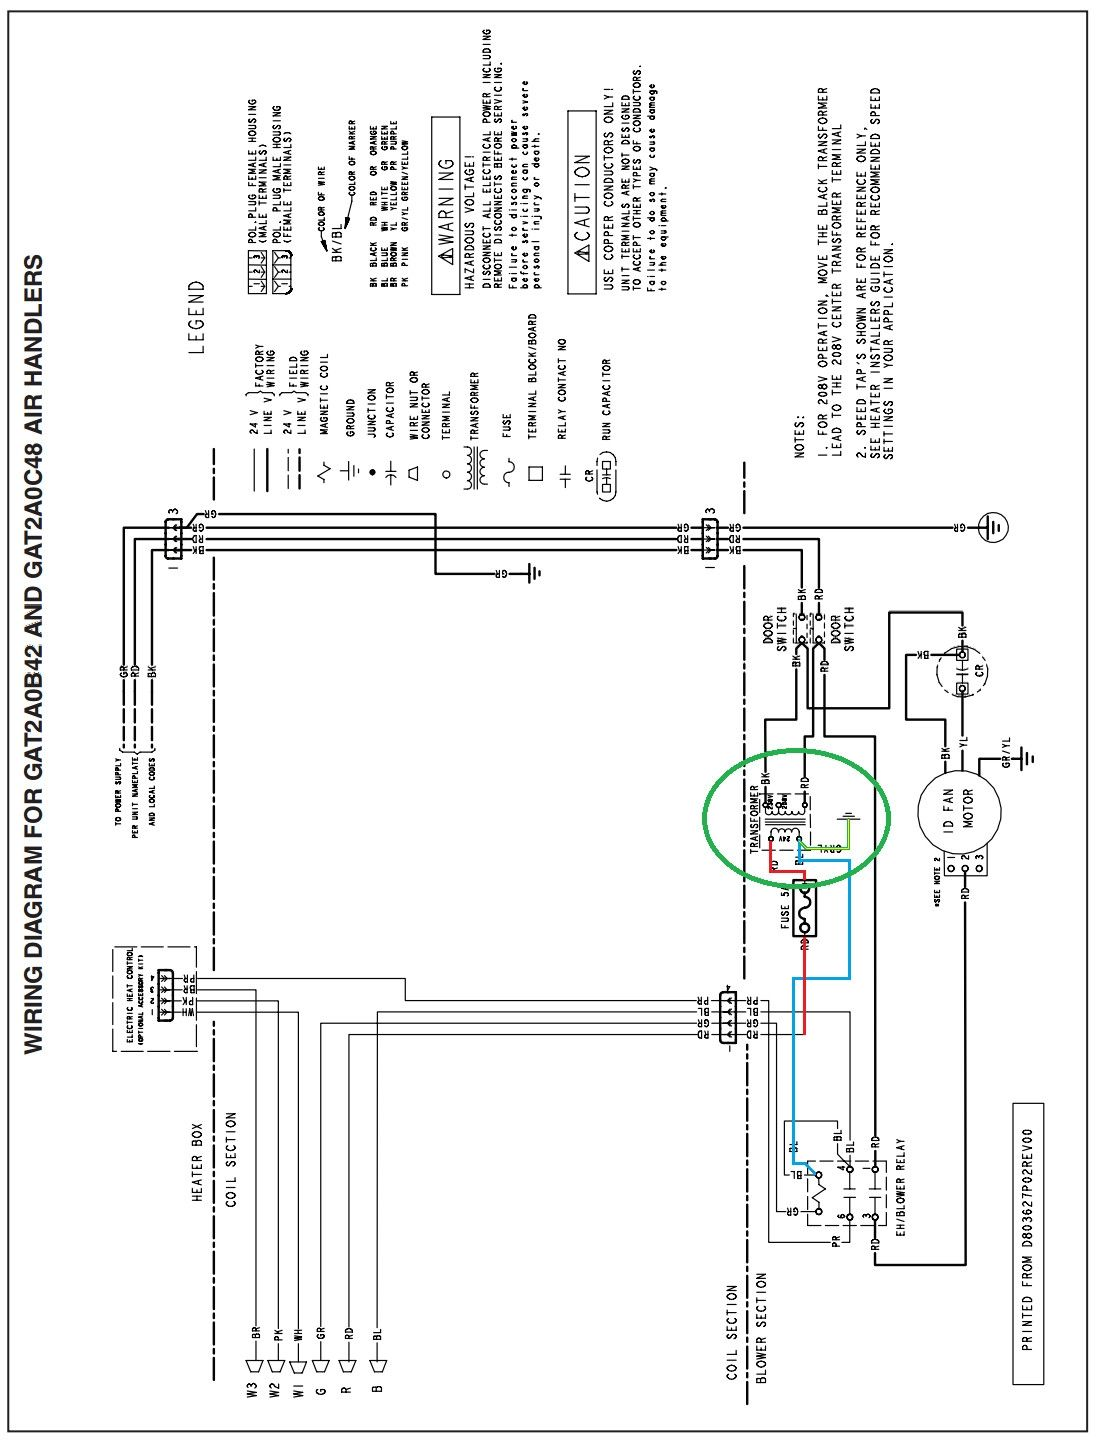 trane air handler wiring diagram hvac with deconstructmyhouse with trane wiring diagram [ 1096 x 1441 Pixel ]